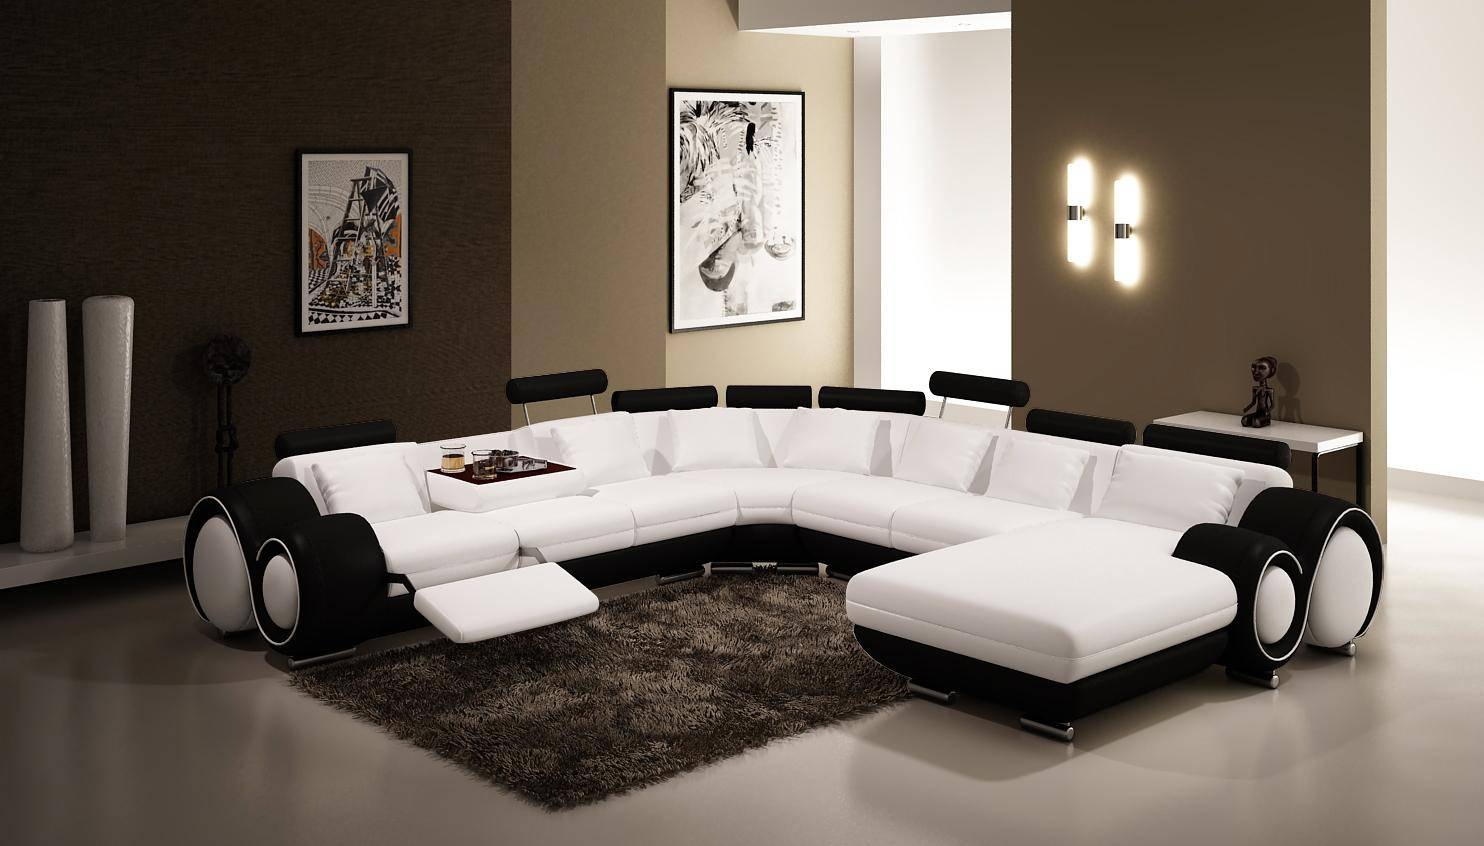 Black And White Sectional Sofas - Hotelsbacau for White And Black Sofas (Image 10 of 30)